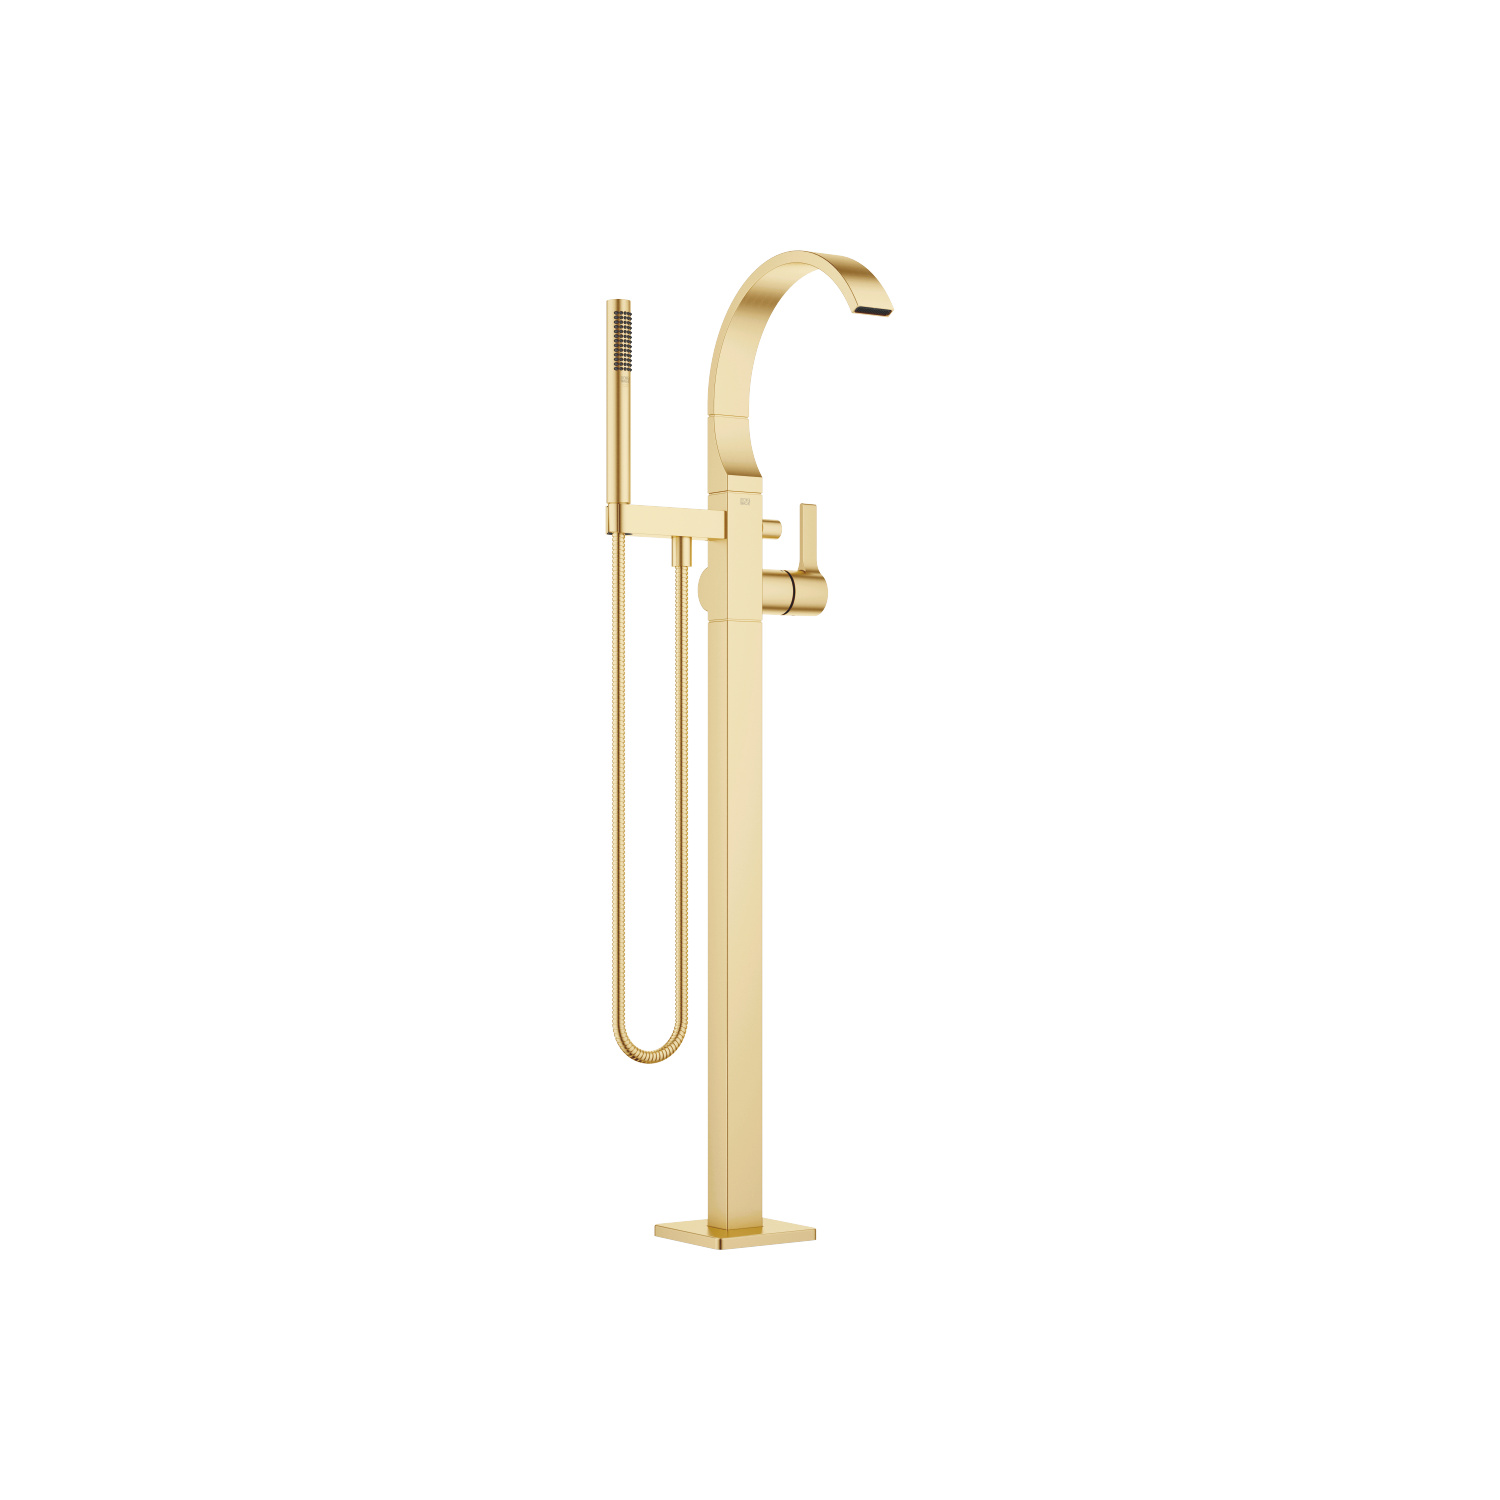 Single-lever bath mixer with stand pipe for free-standing assembly with hand shower set - brushed Durabrass